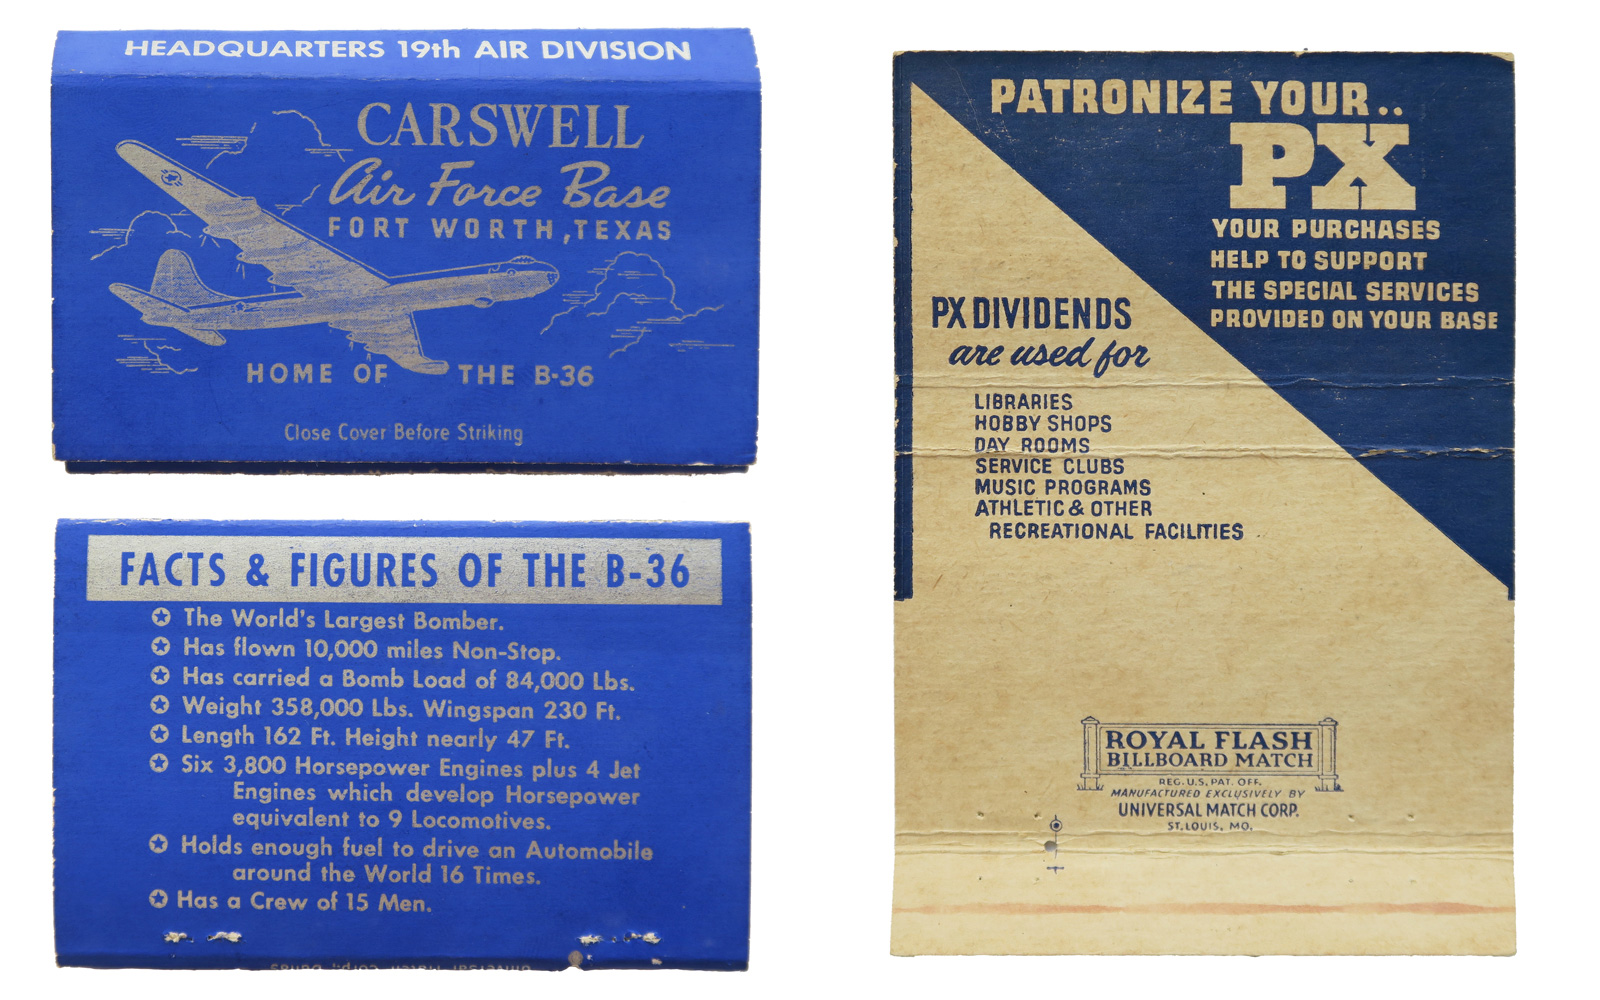 Carswell Air Force Base  - 19th Air Division / PX Advertisement - B-36